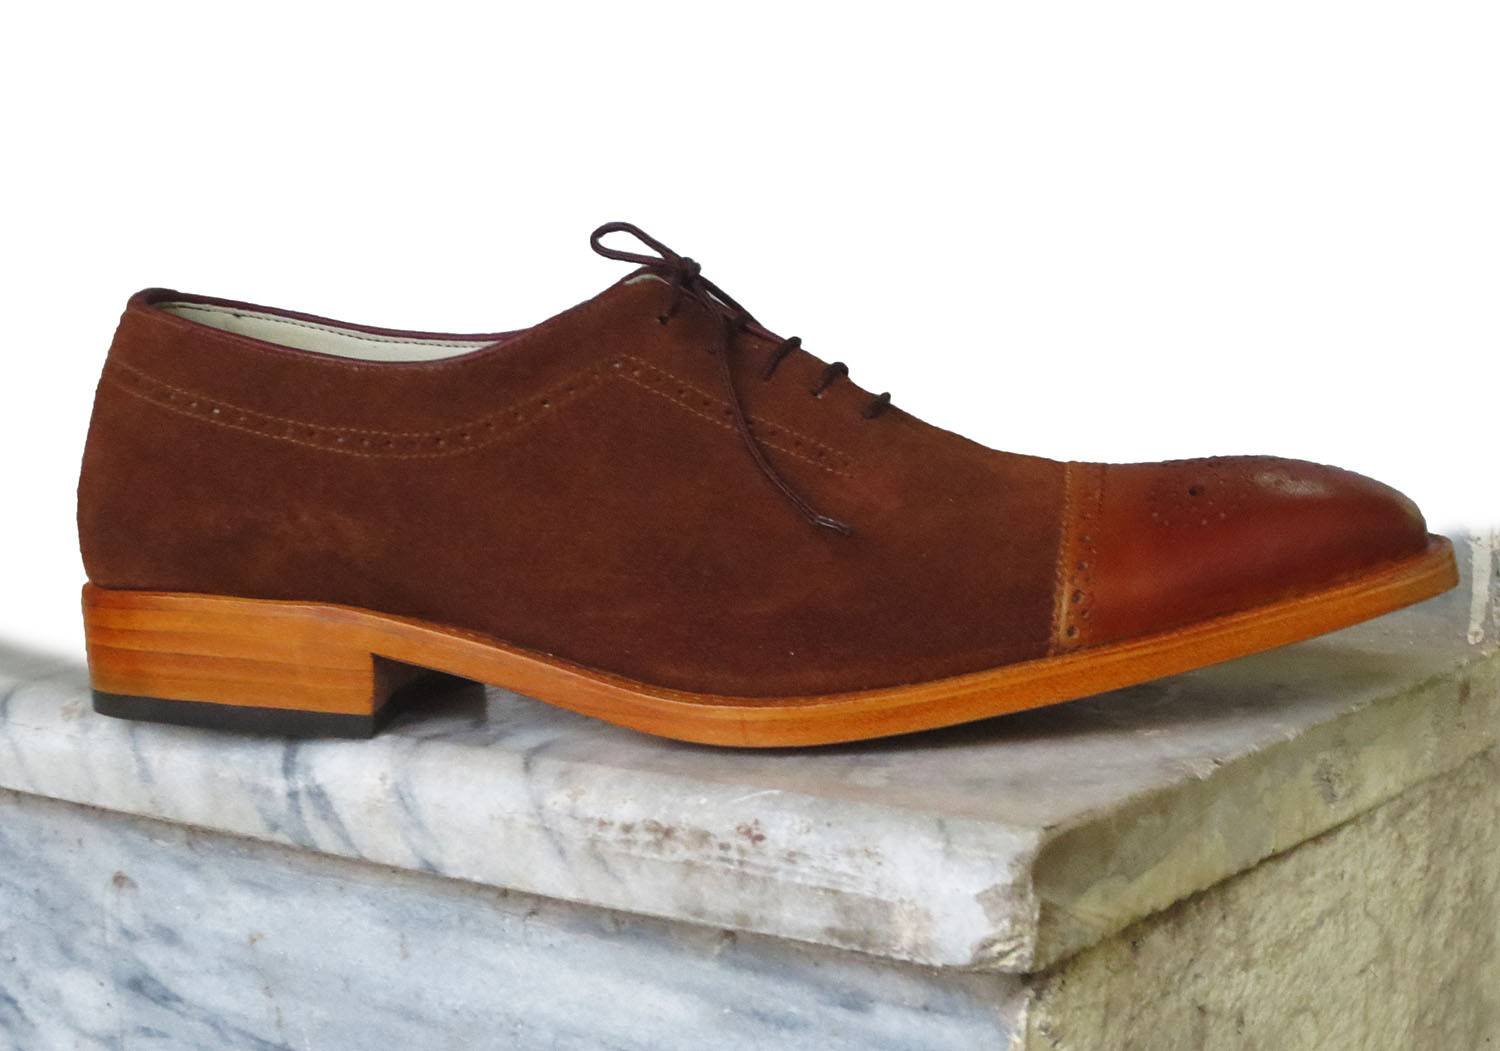 Superior Brown Suede Leather Cap Toe Tan Sole Lace Up Oxford Men Shoes image 2